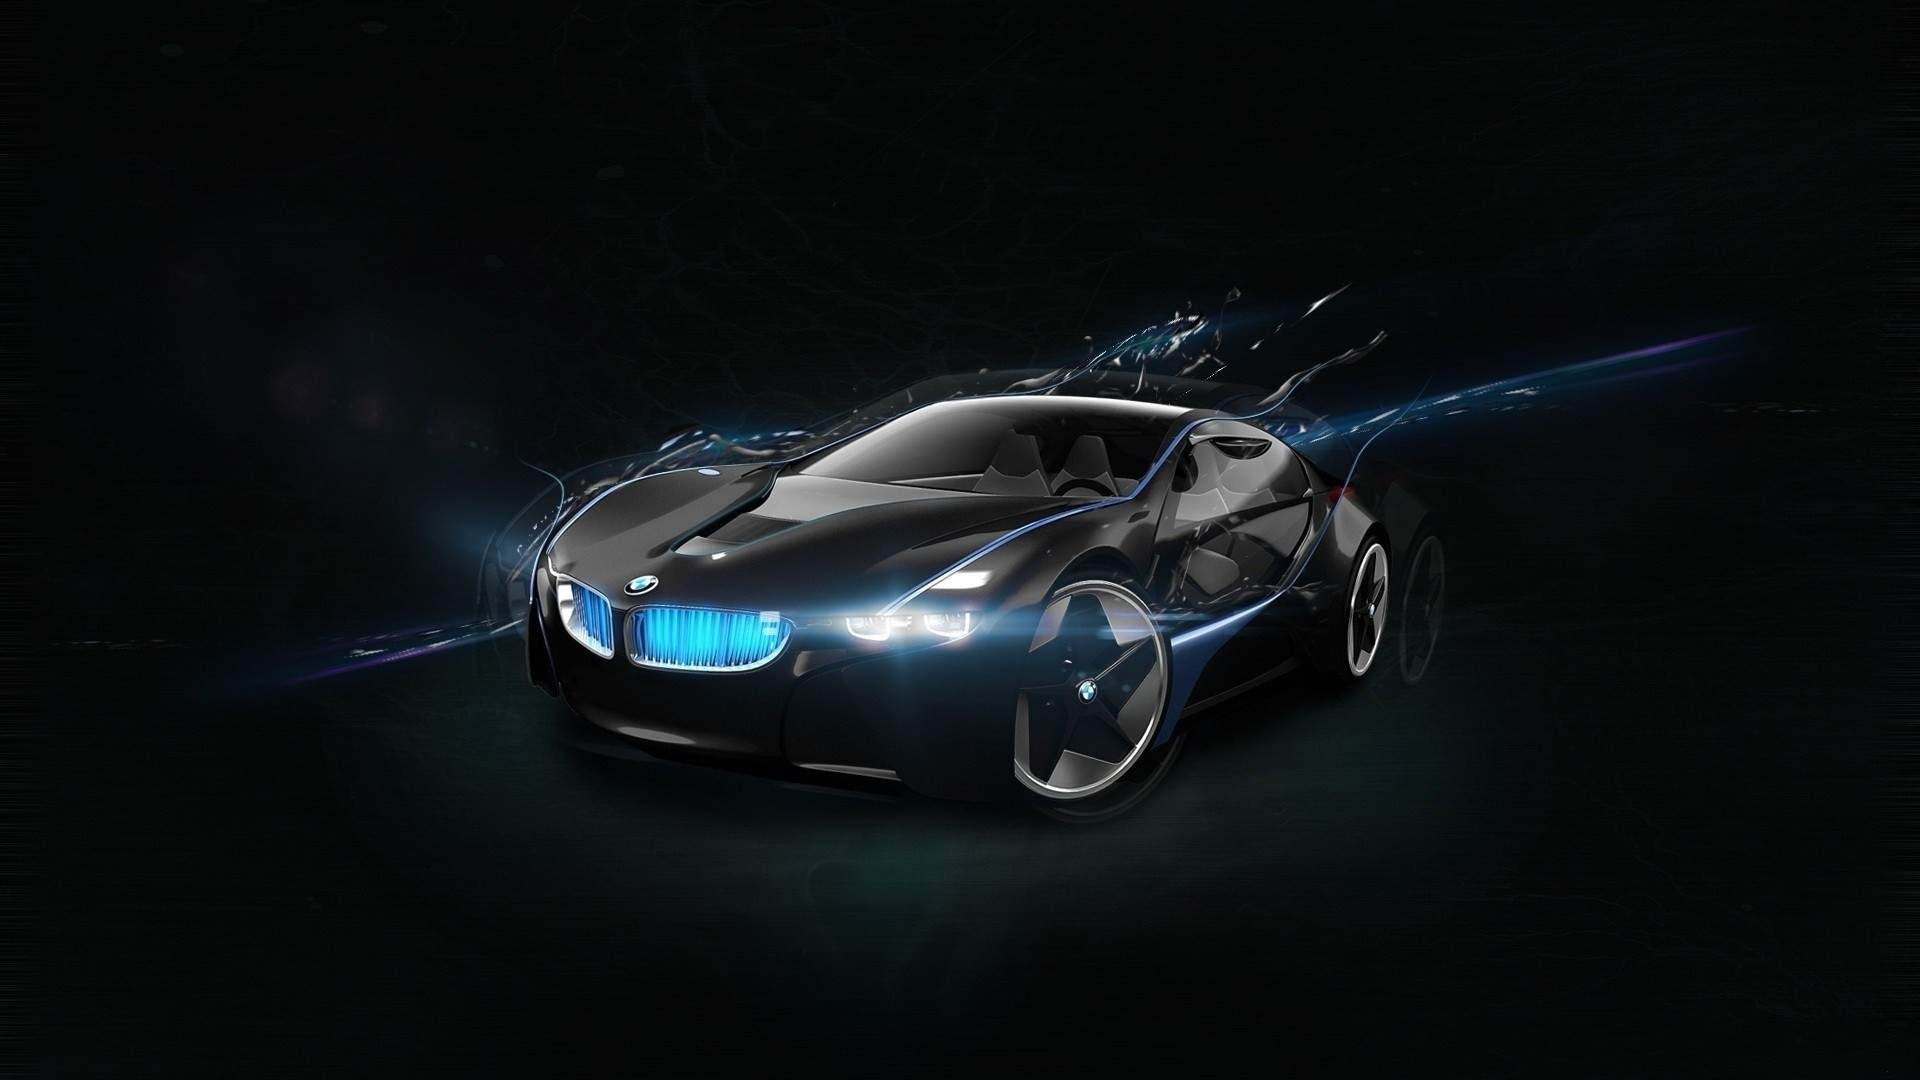 1920x1080 BMW Vision Super Car Wallpapers | HD Wallpapers